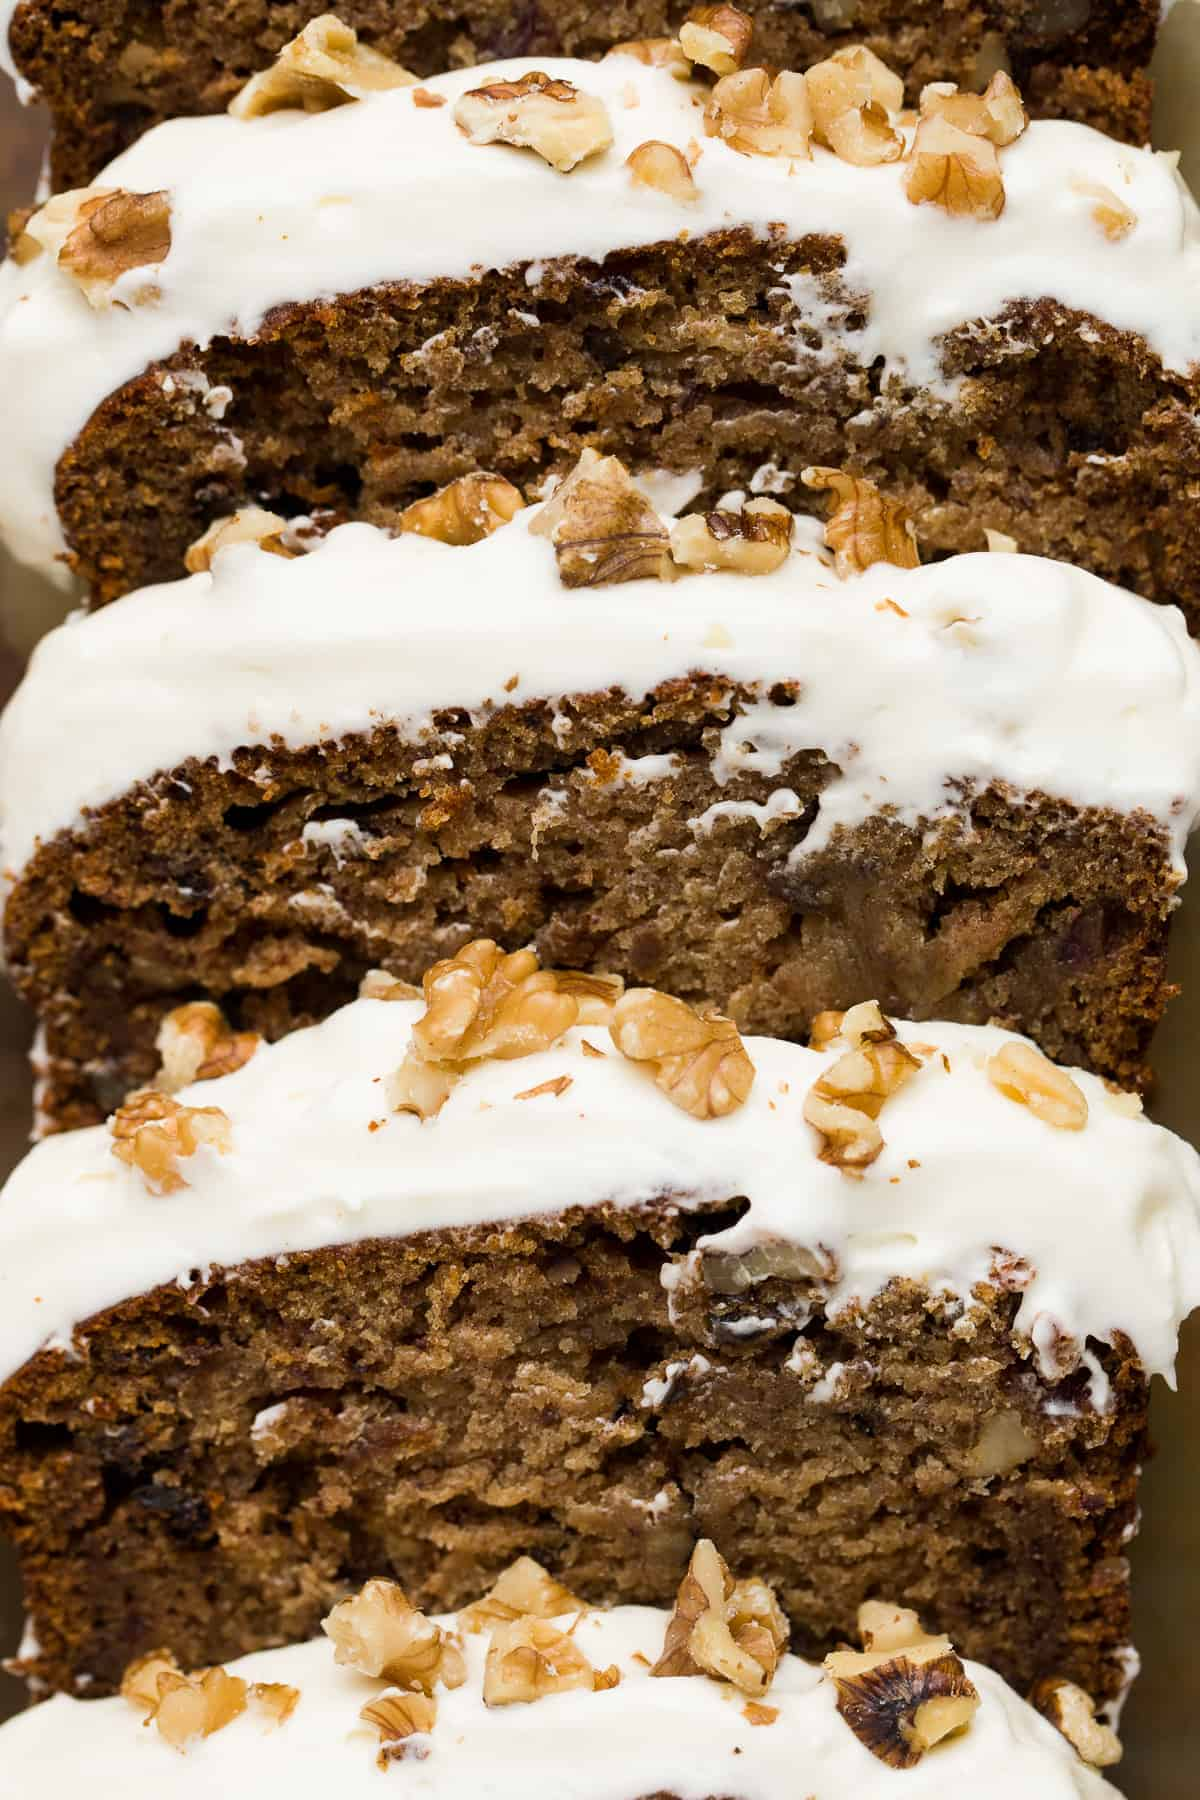 A close up image of a loaf cake that has been cut into slices. There are visible chopped walnuts and dates and a thick layer of white coloured frosting.